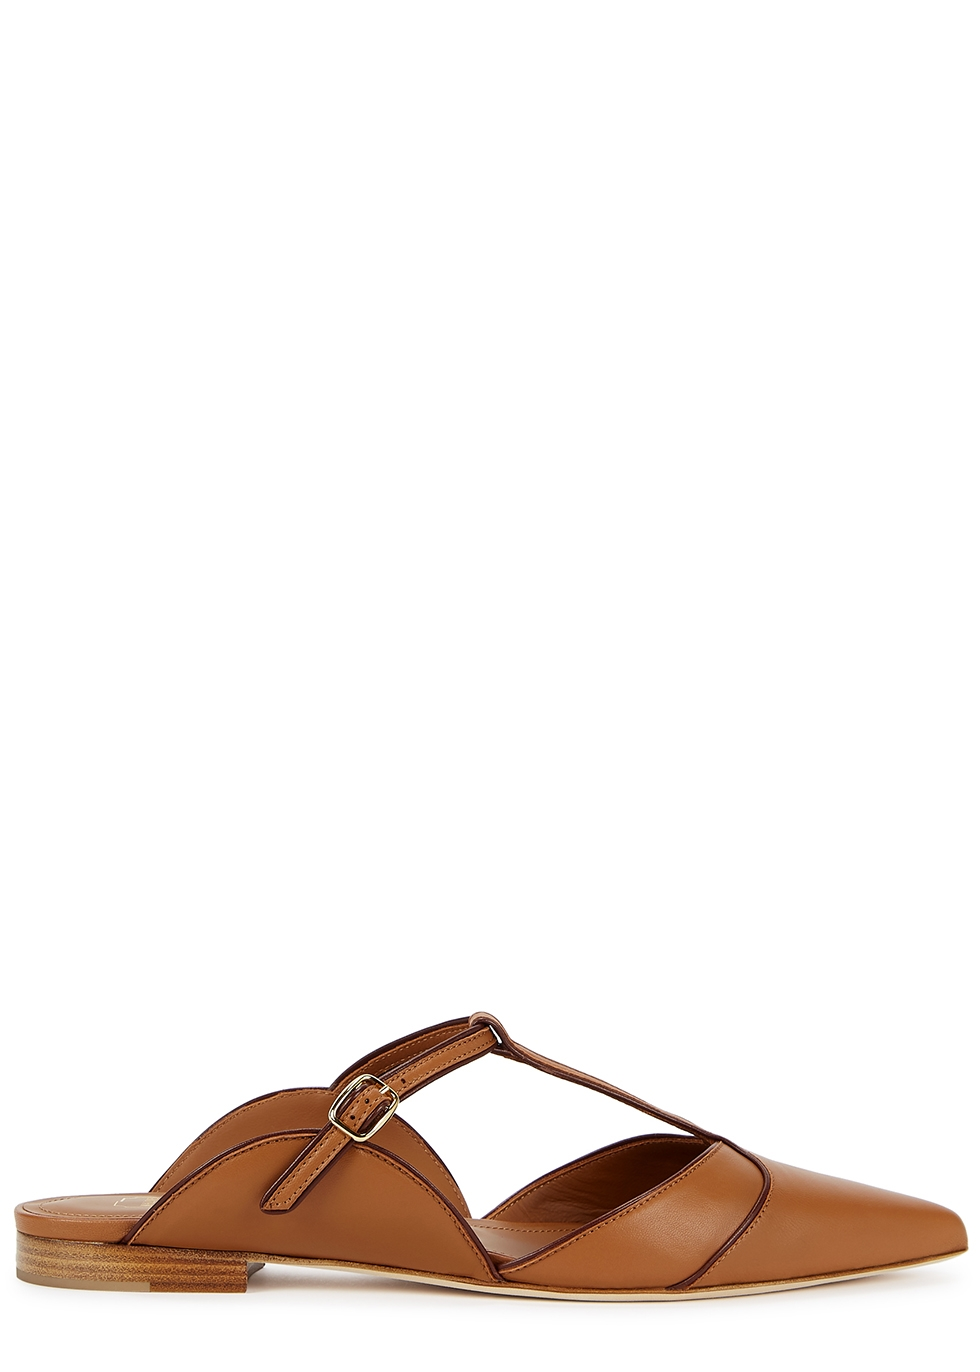 Imogen 10 brown leather mules